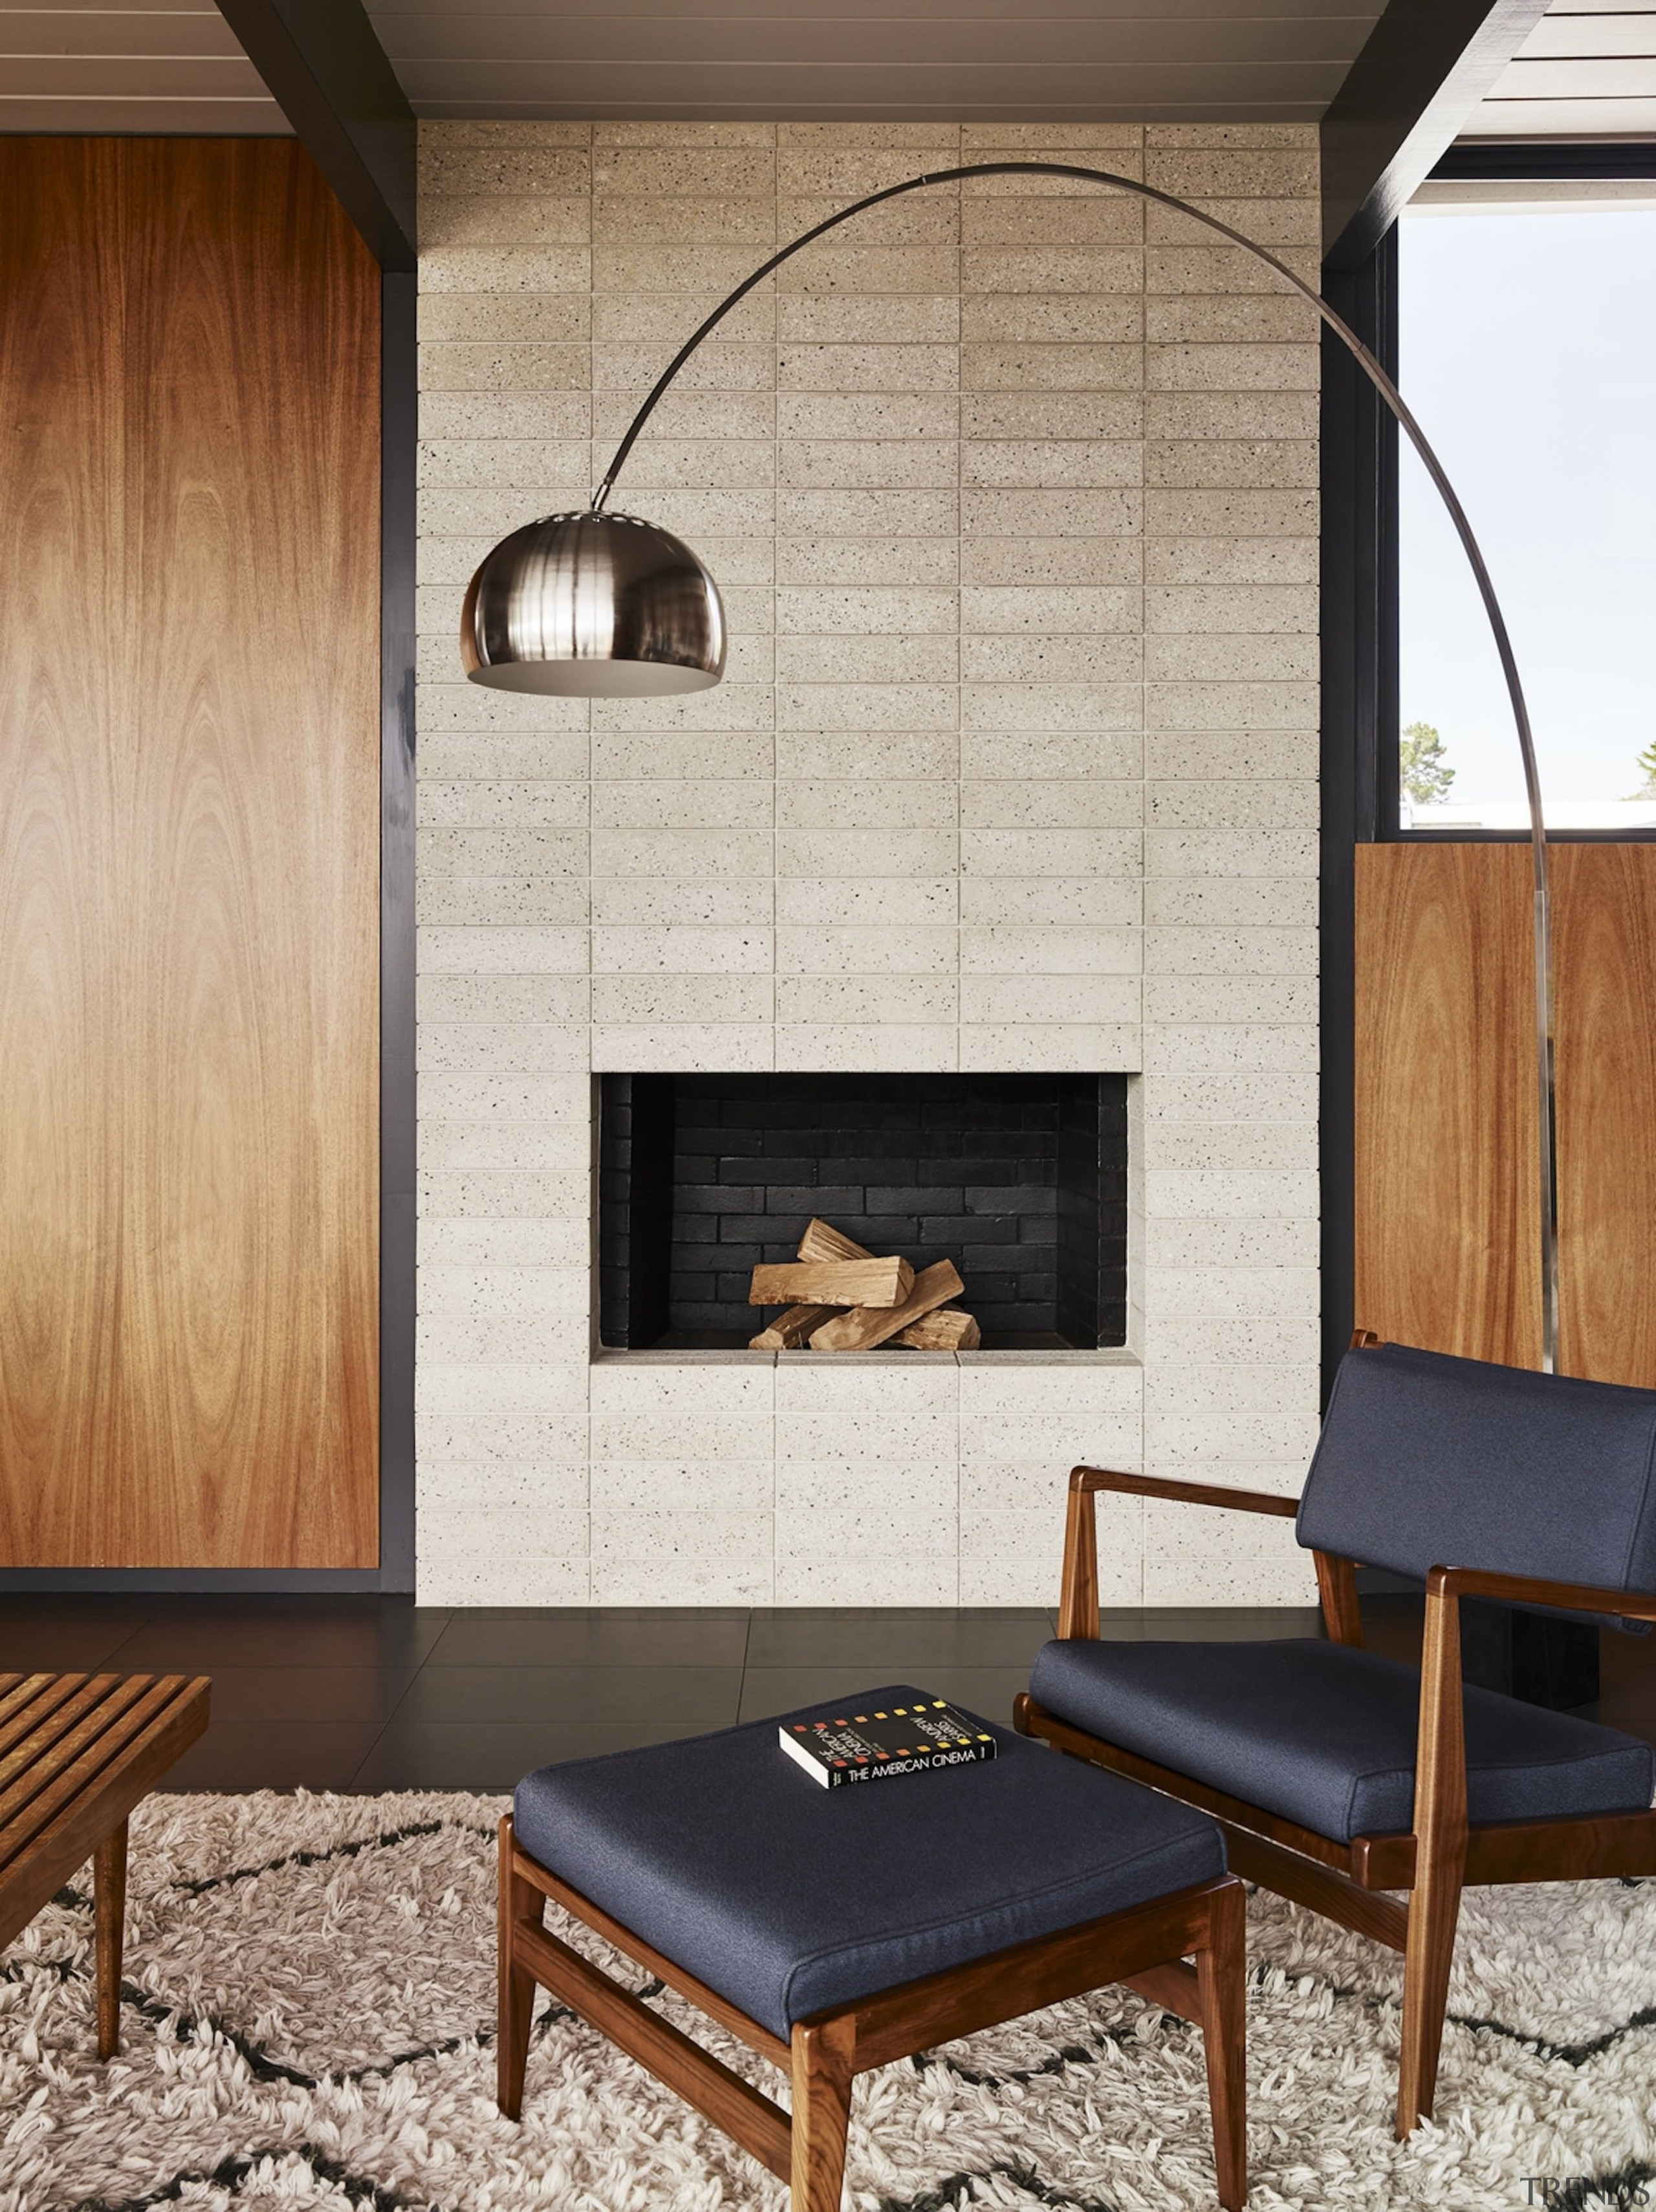 The fireplace sits tucked into the wall - architecture, ceiling, chair, fireplace, floor, flooring, furniture, hearth, interior design, living room, table, wall, gray